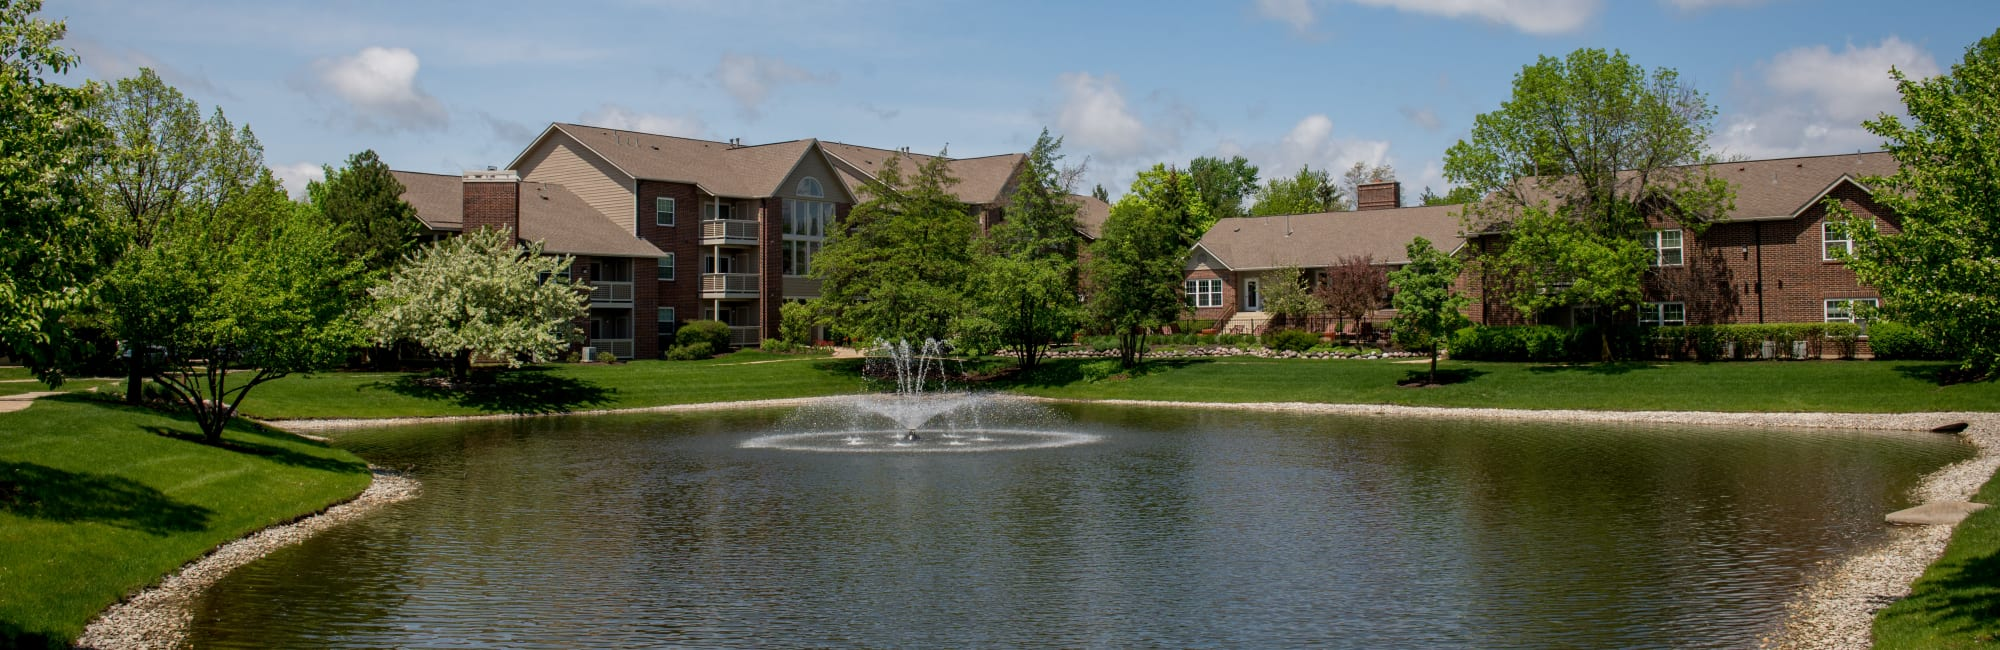 Apartments at The Lakes of Schaumburg in Schaumburg, Illinois